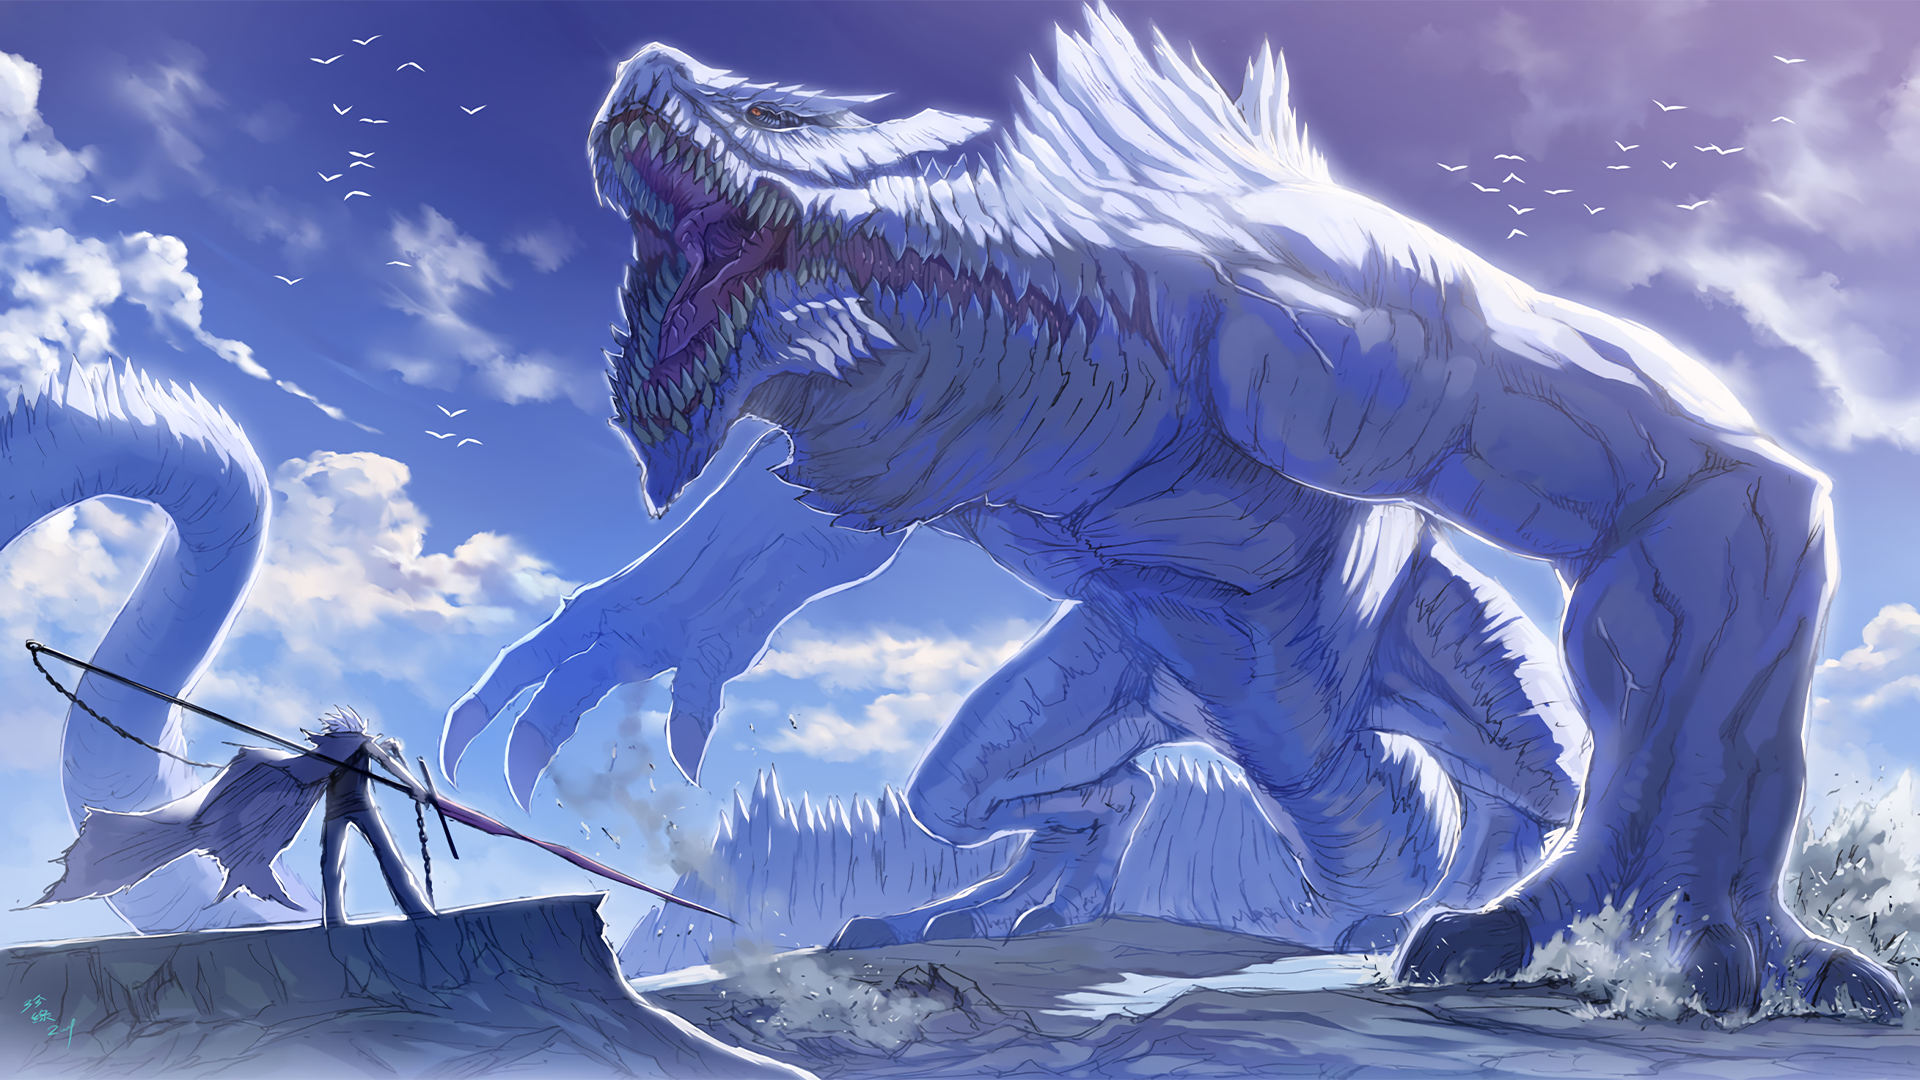 anime wallpapers pretty cool monster fight image mod db